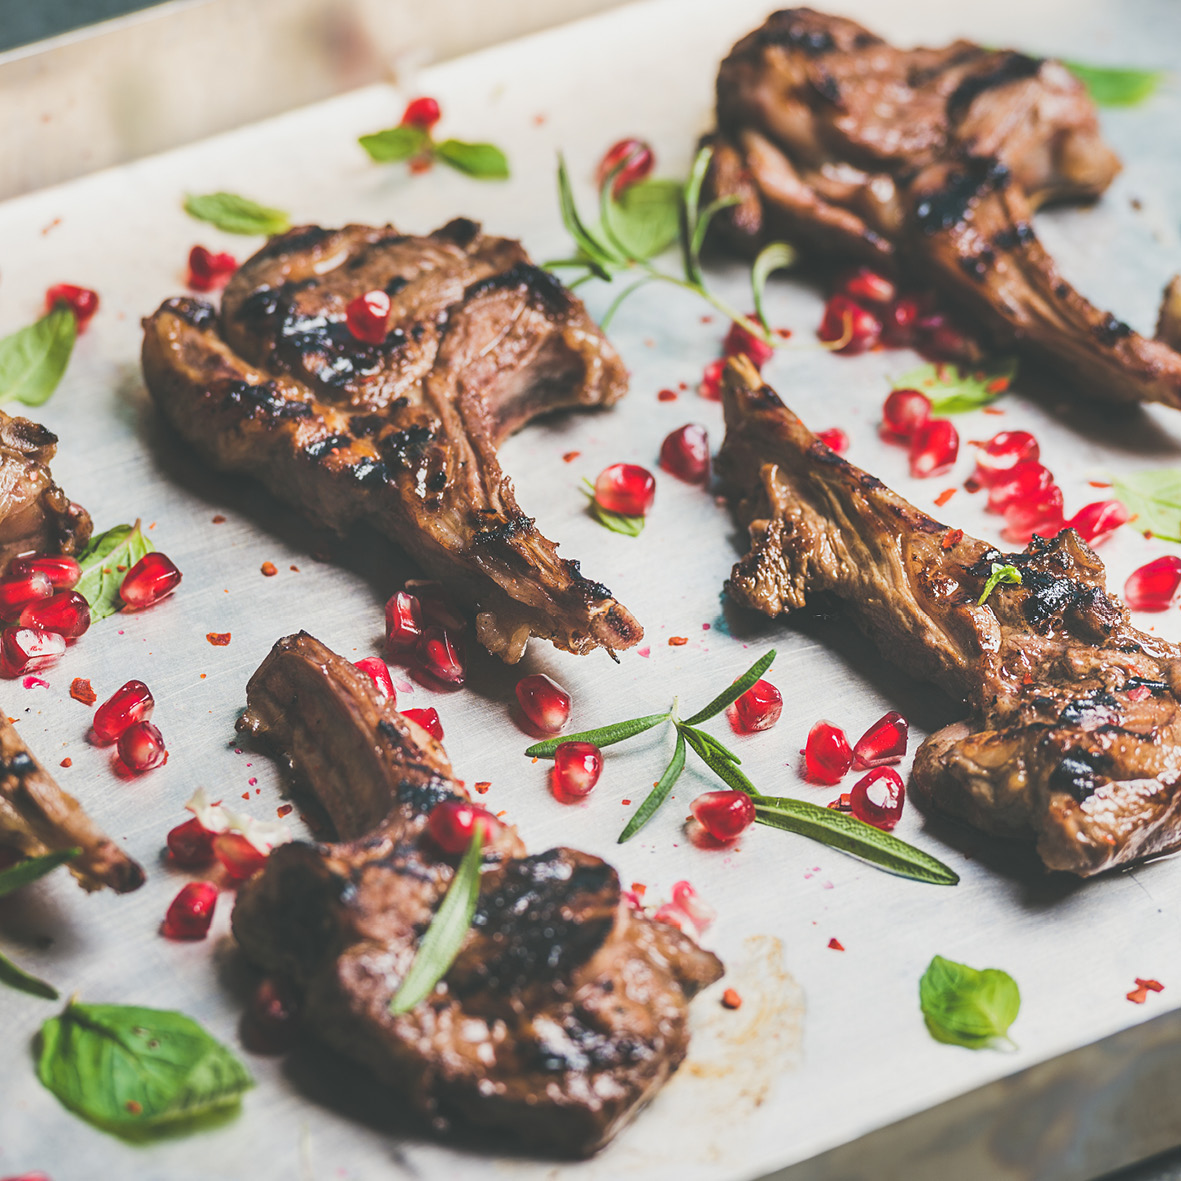 dukkah_crusted_lamb_chops_with_mint_and_pomegranate_salad.jpg